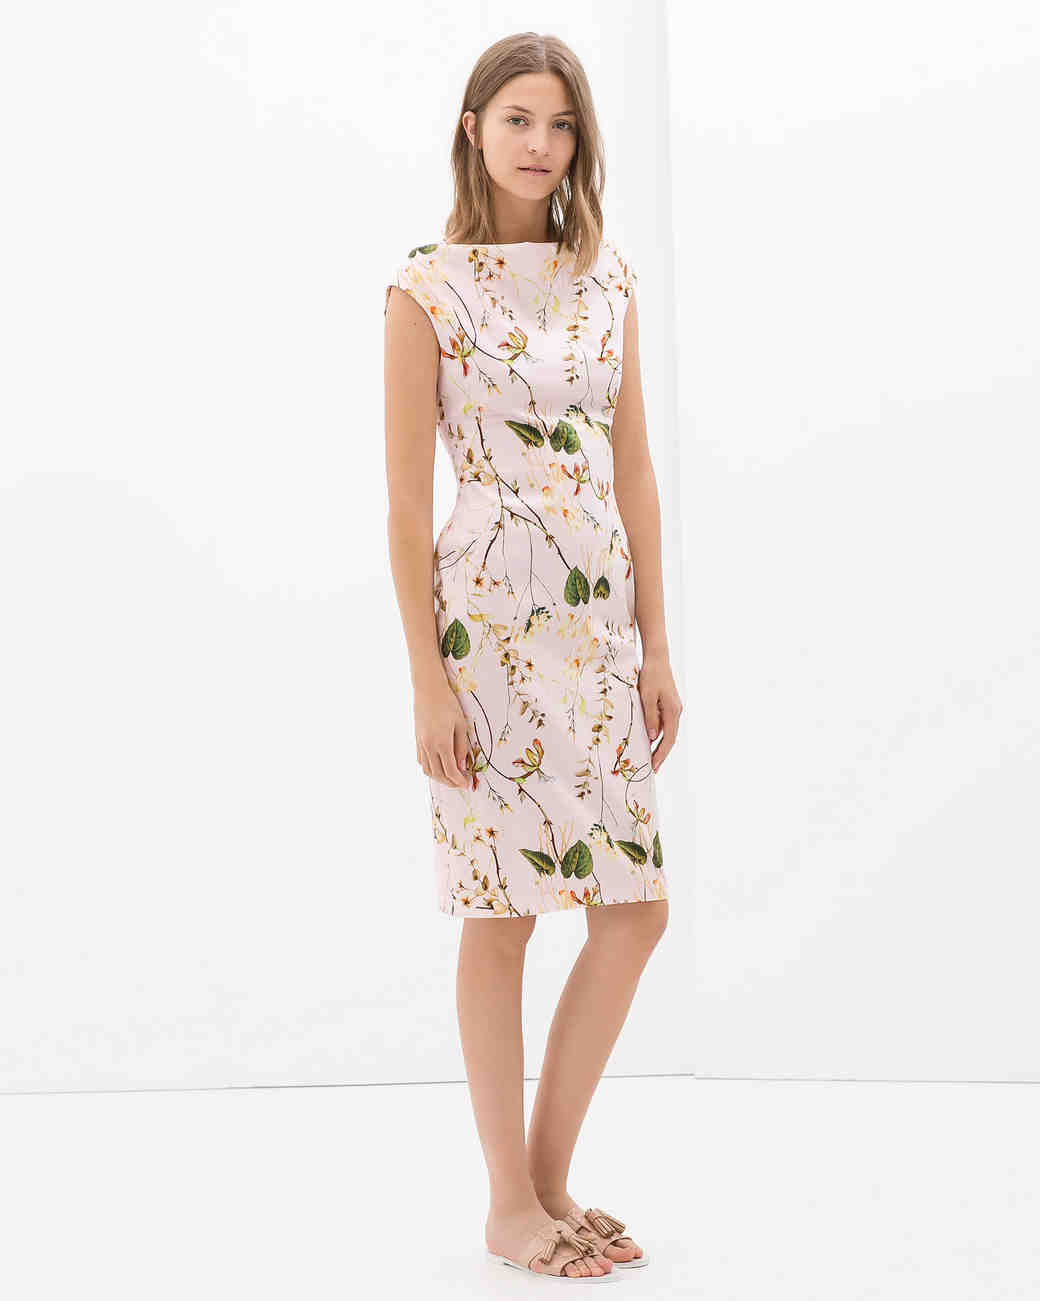 guest-wedding-outfits-zara-printed-dress-0614.jpg